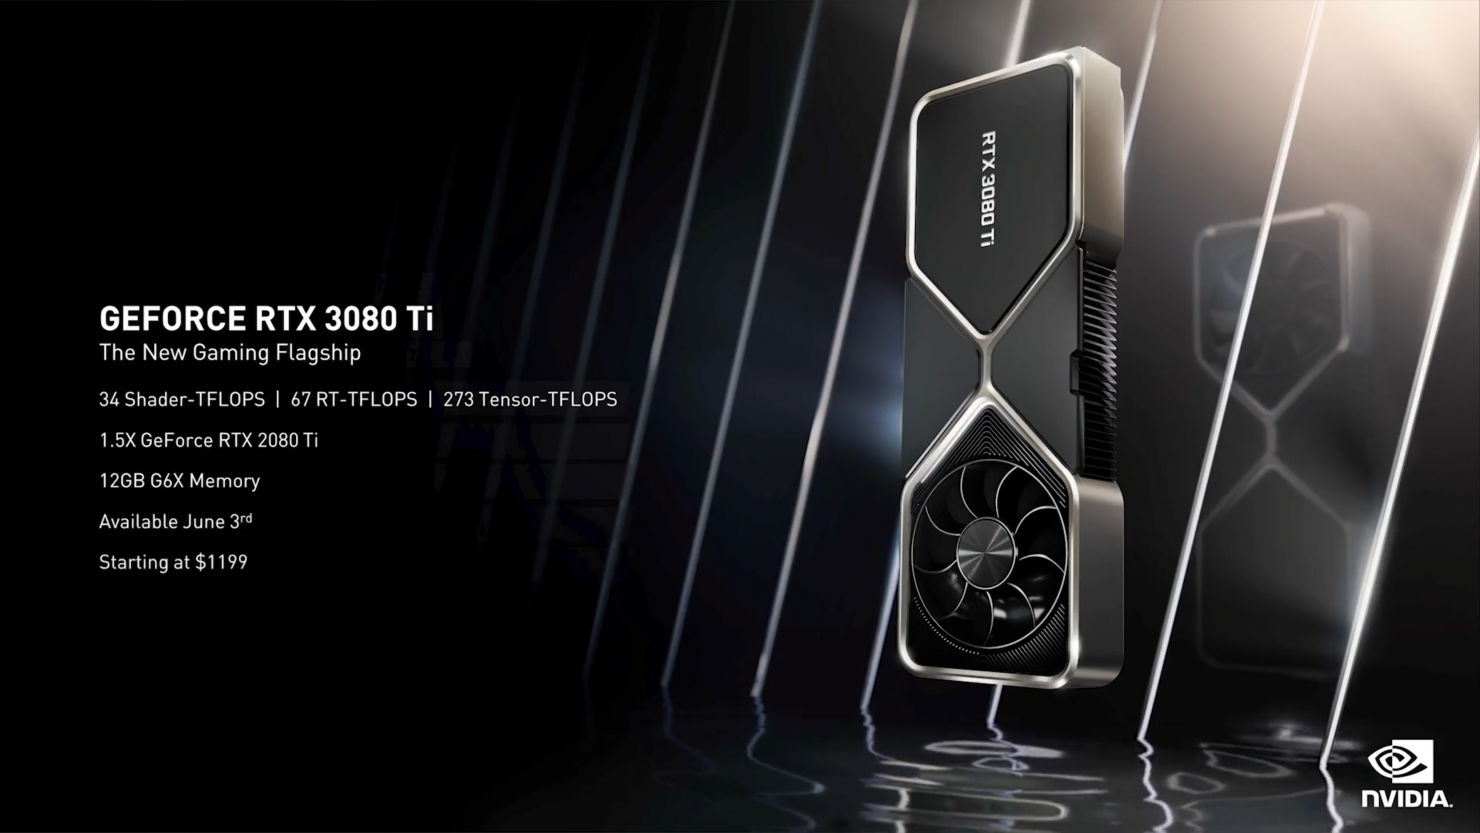 how-to-buy-an-nvidia-geforce-rtx-3080-ti-from-brick-and-mortar-stores